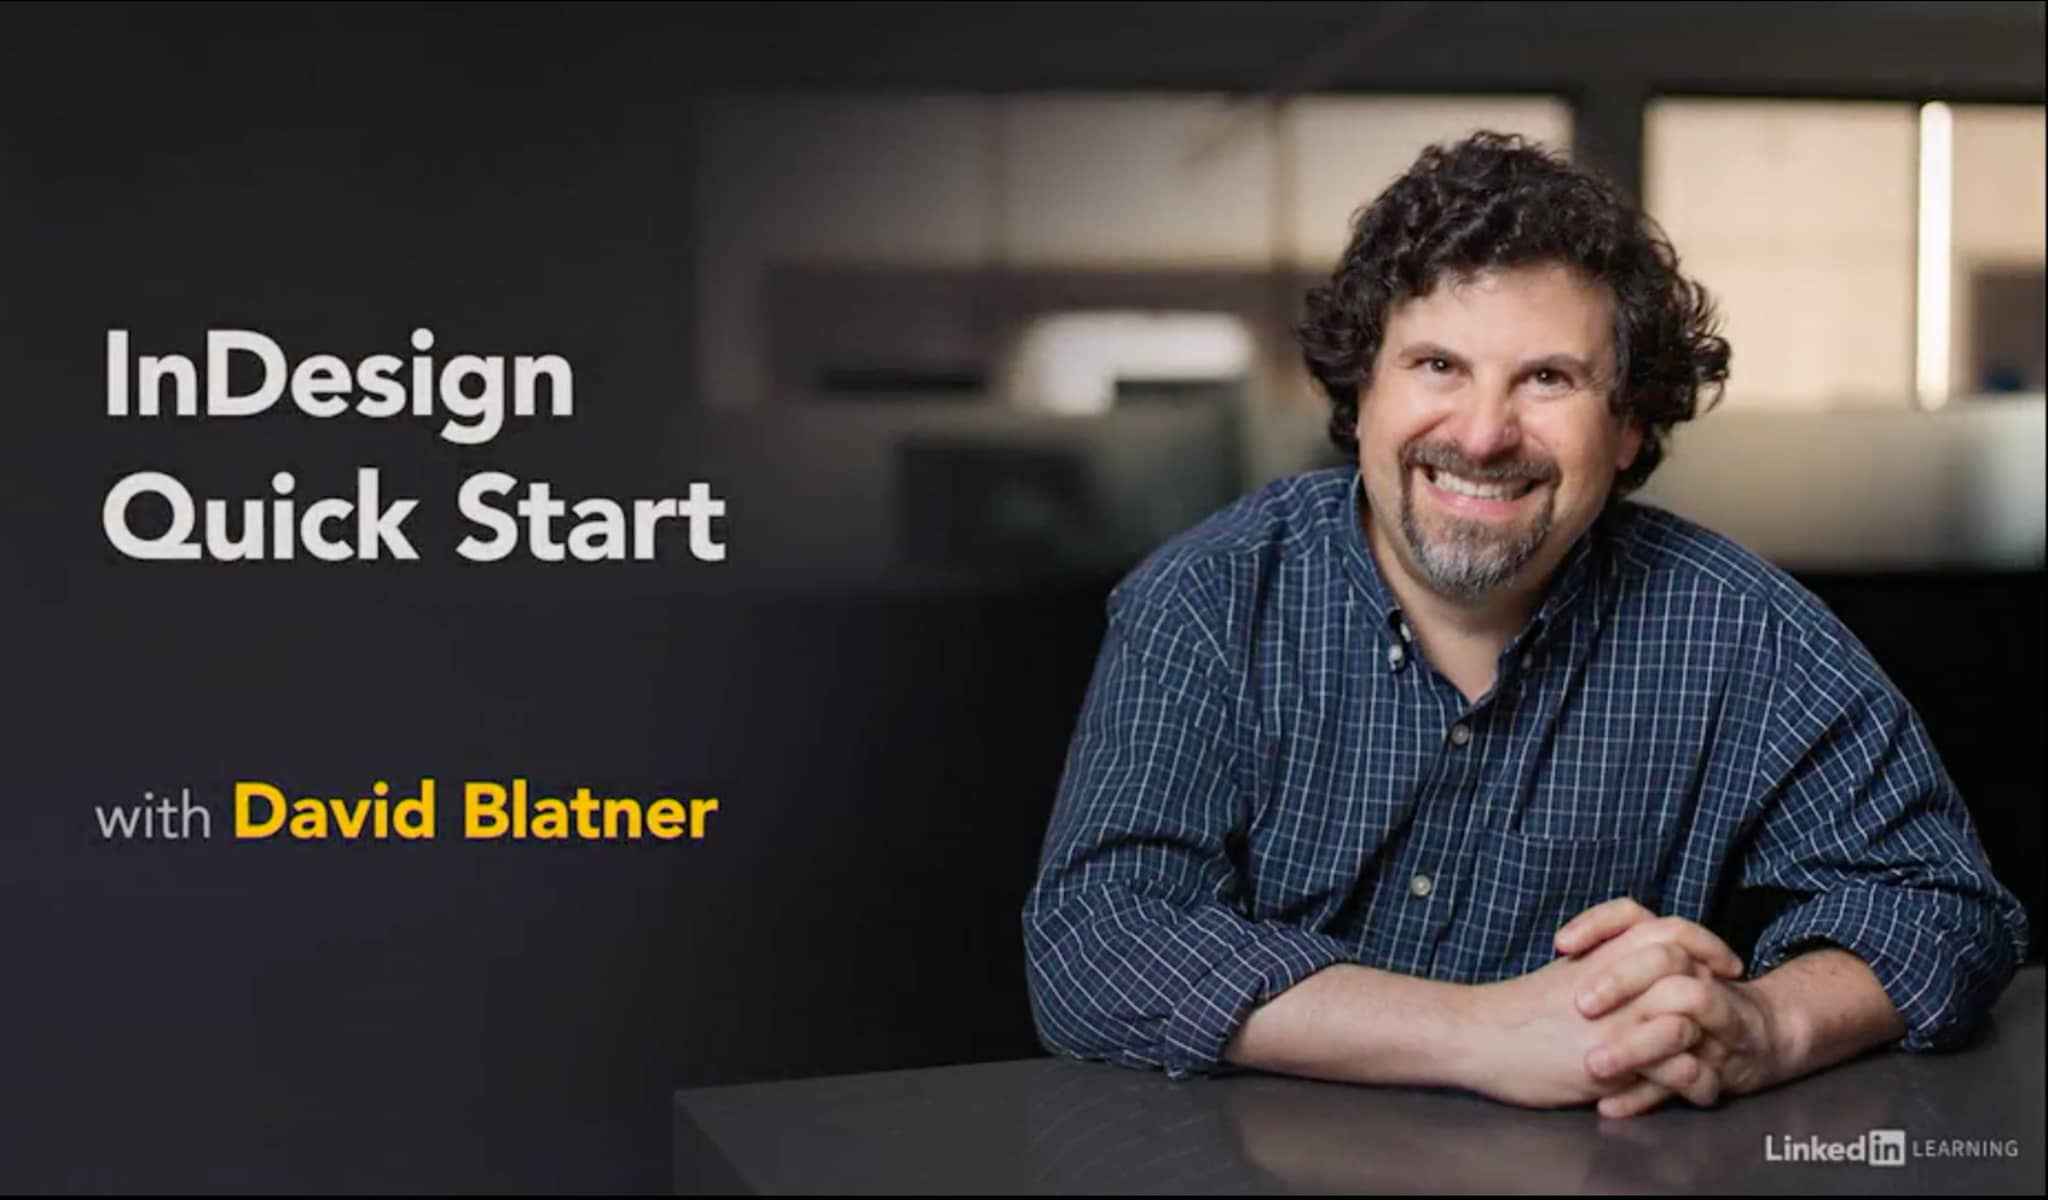 InDesign Course: Quick Start by David Blatner